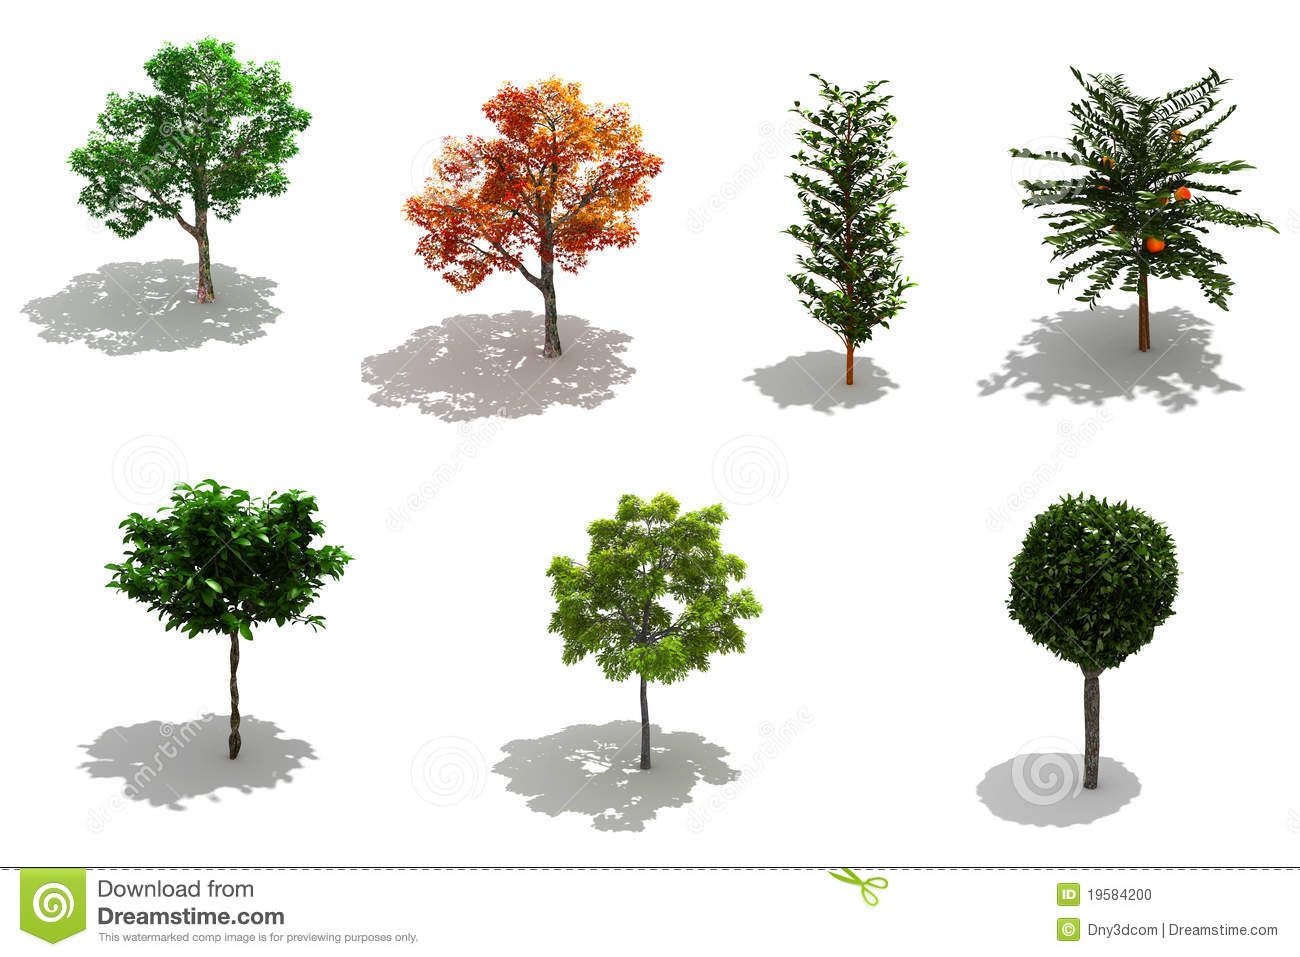 Árboles 3d: 3d Trees Pack With Shadows Stock Photo